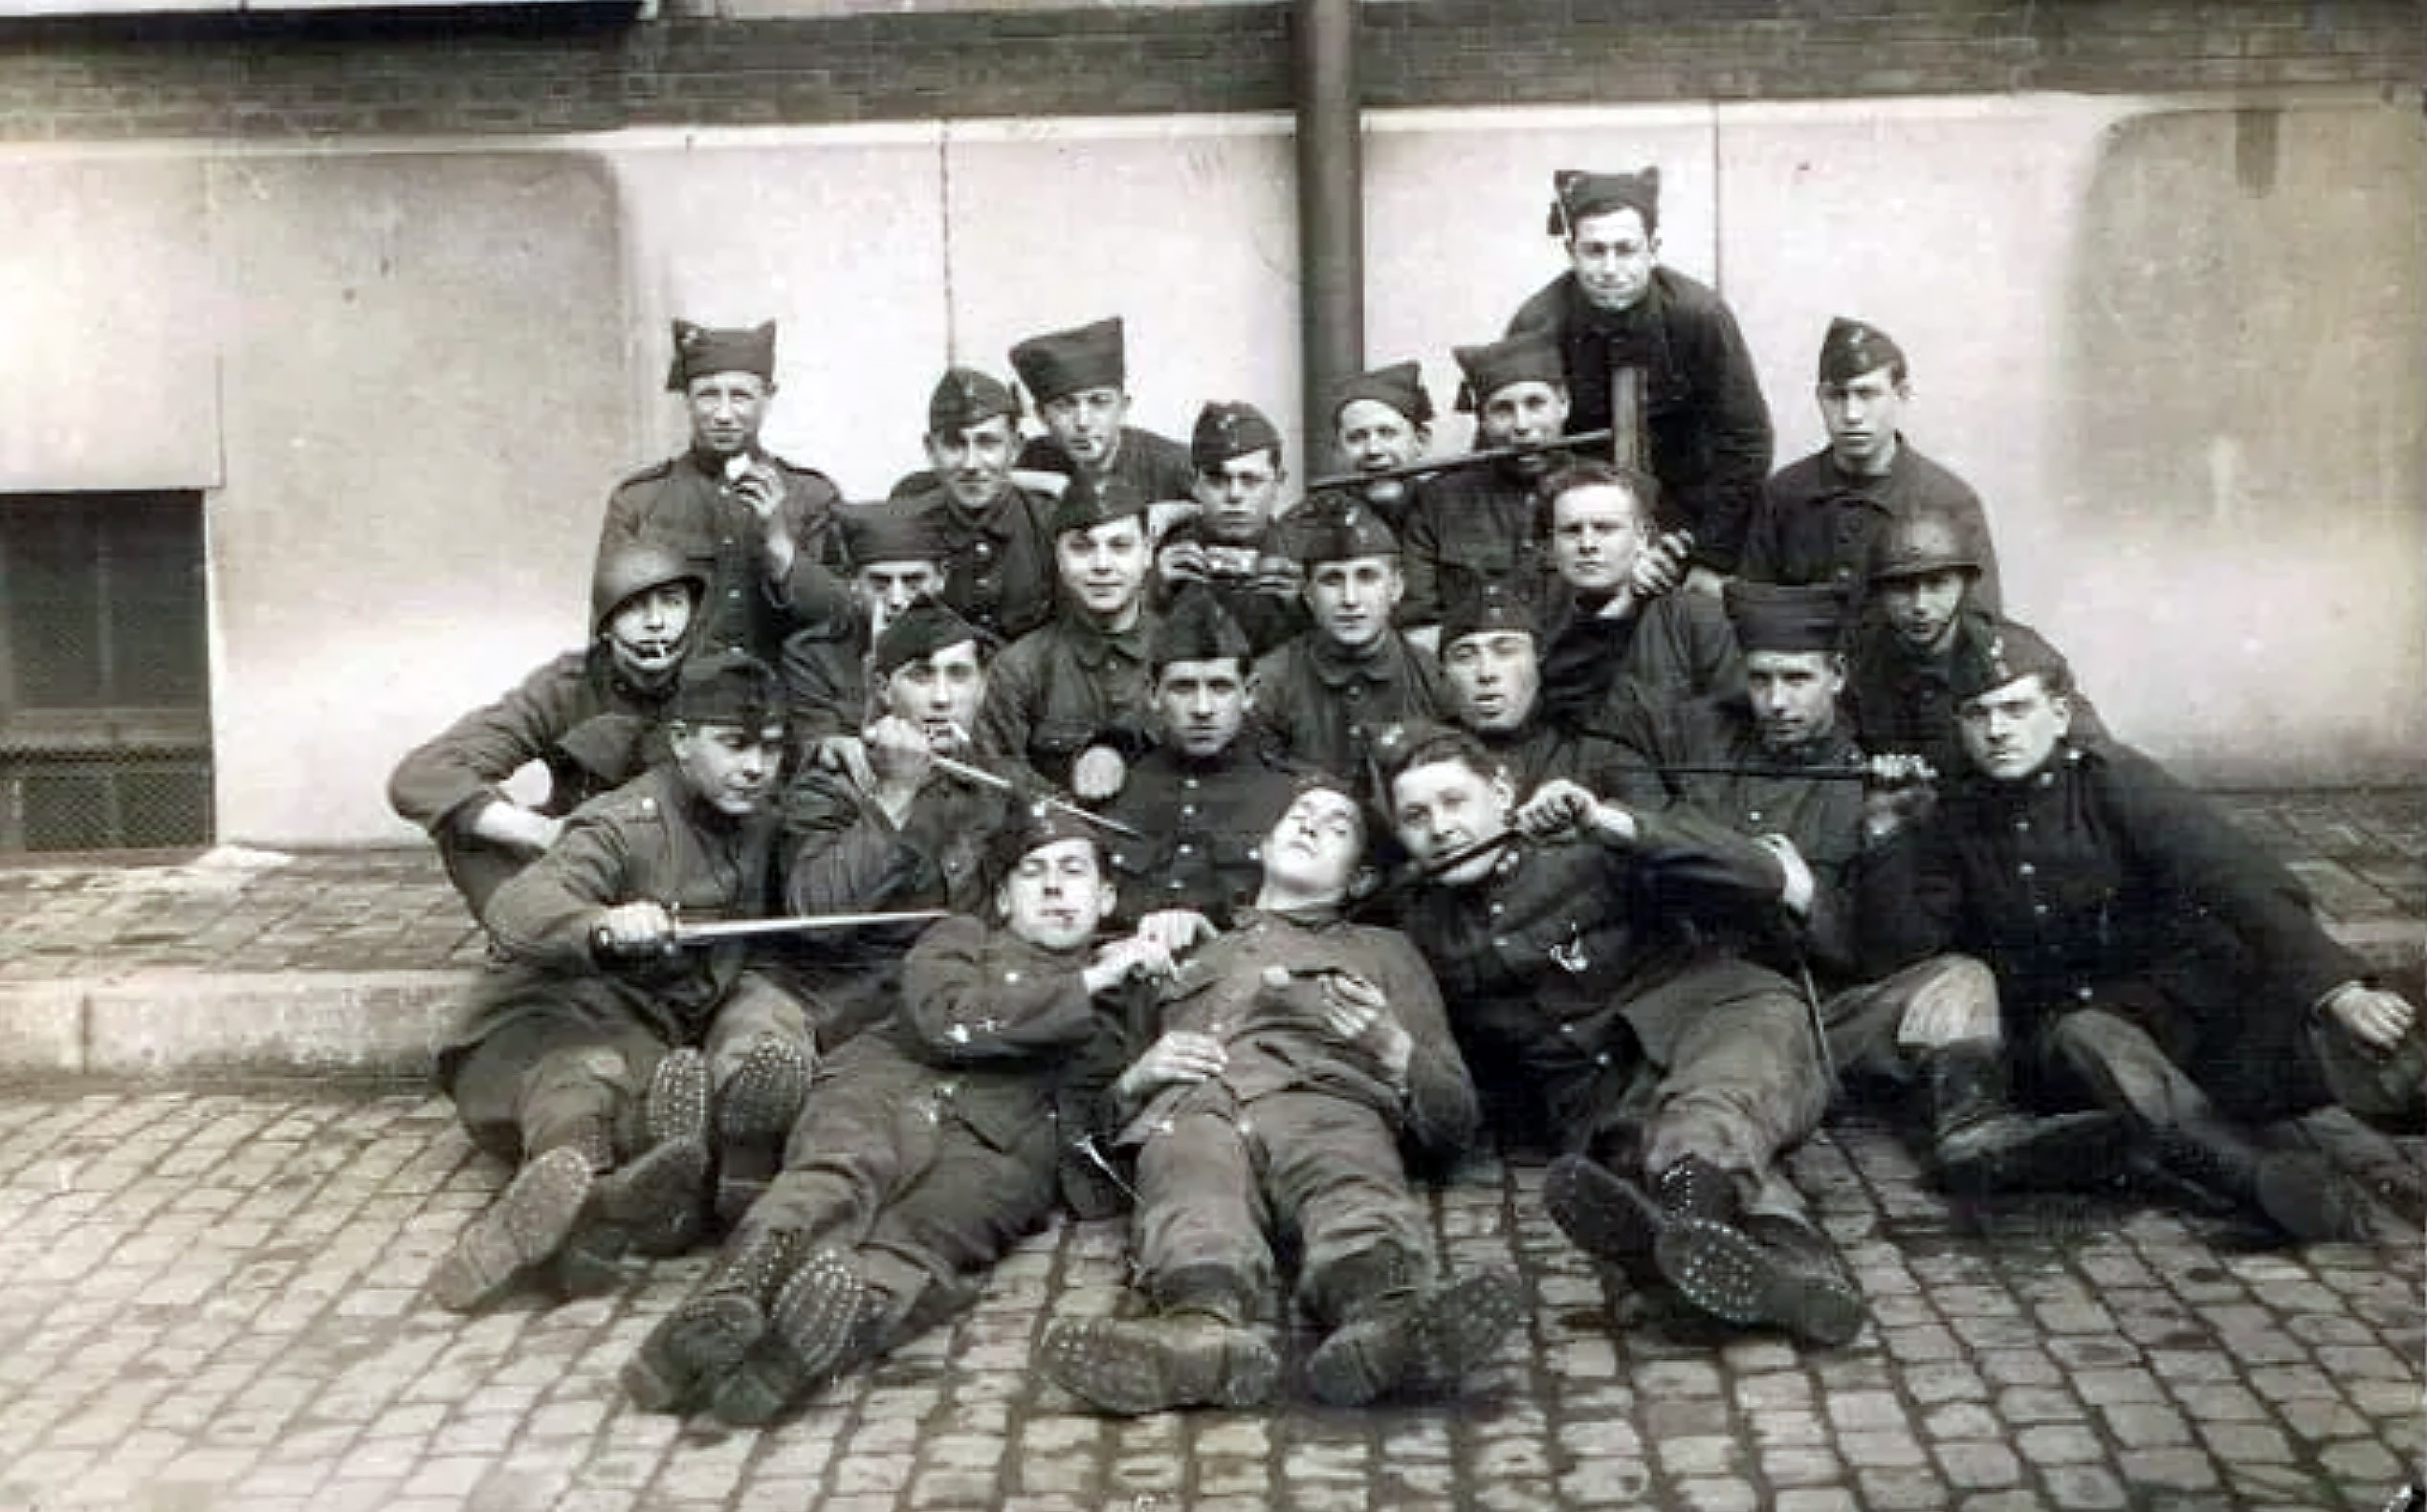 French or Belgian soldiers WWI